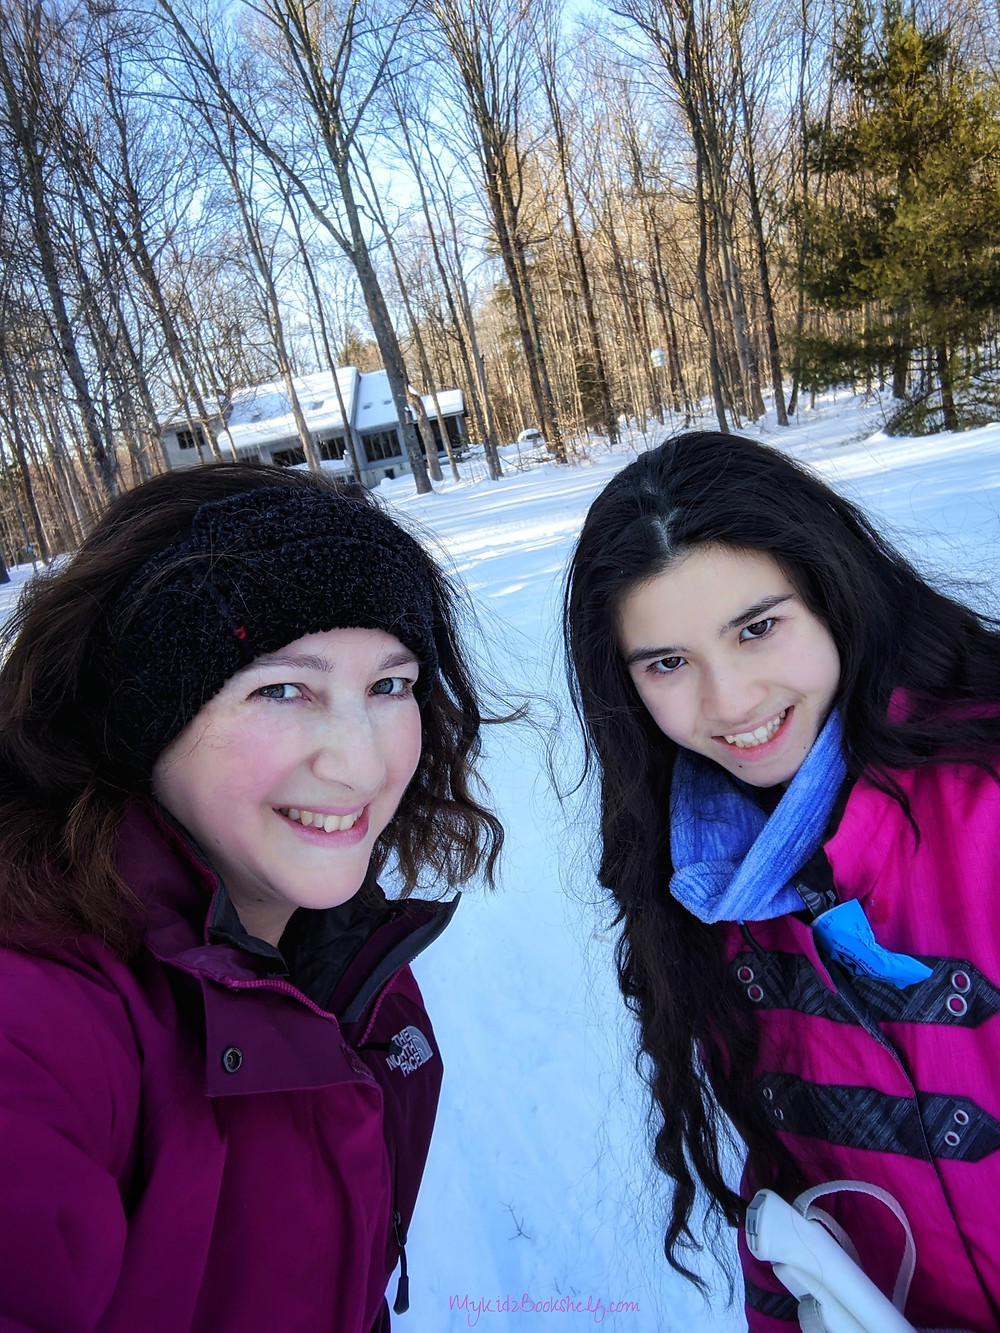 woman and teen girl in winter jackets with background of snowy woods and house in the distance